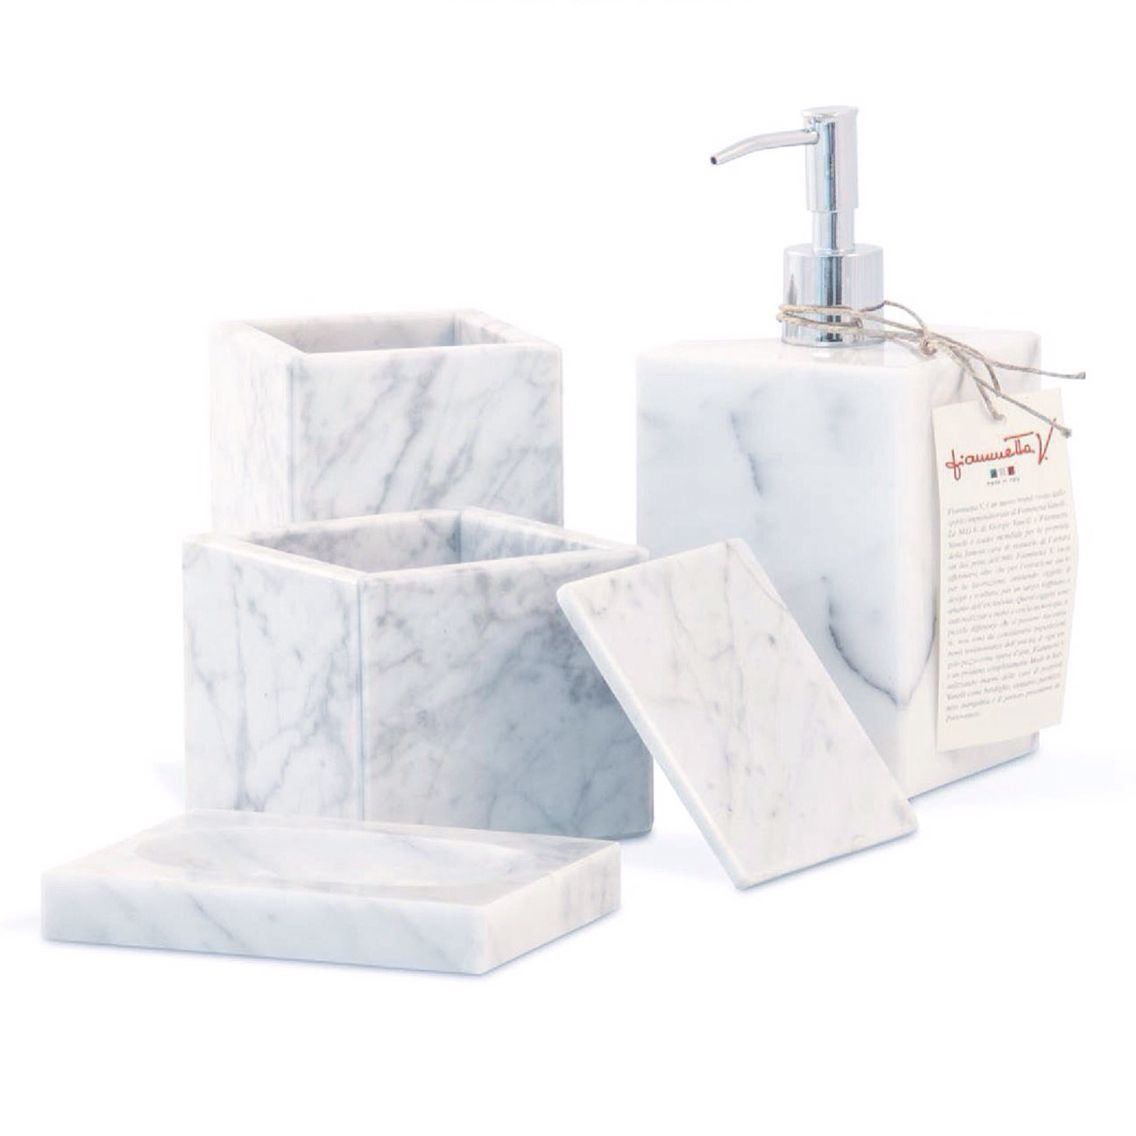 White Carrara Marble Bathroom Set: Soap dispenser | Soap dish ...